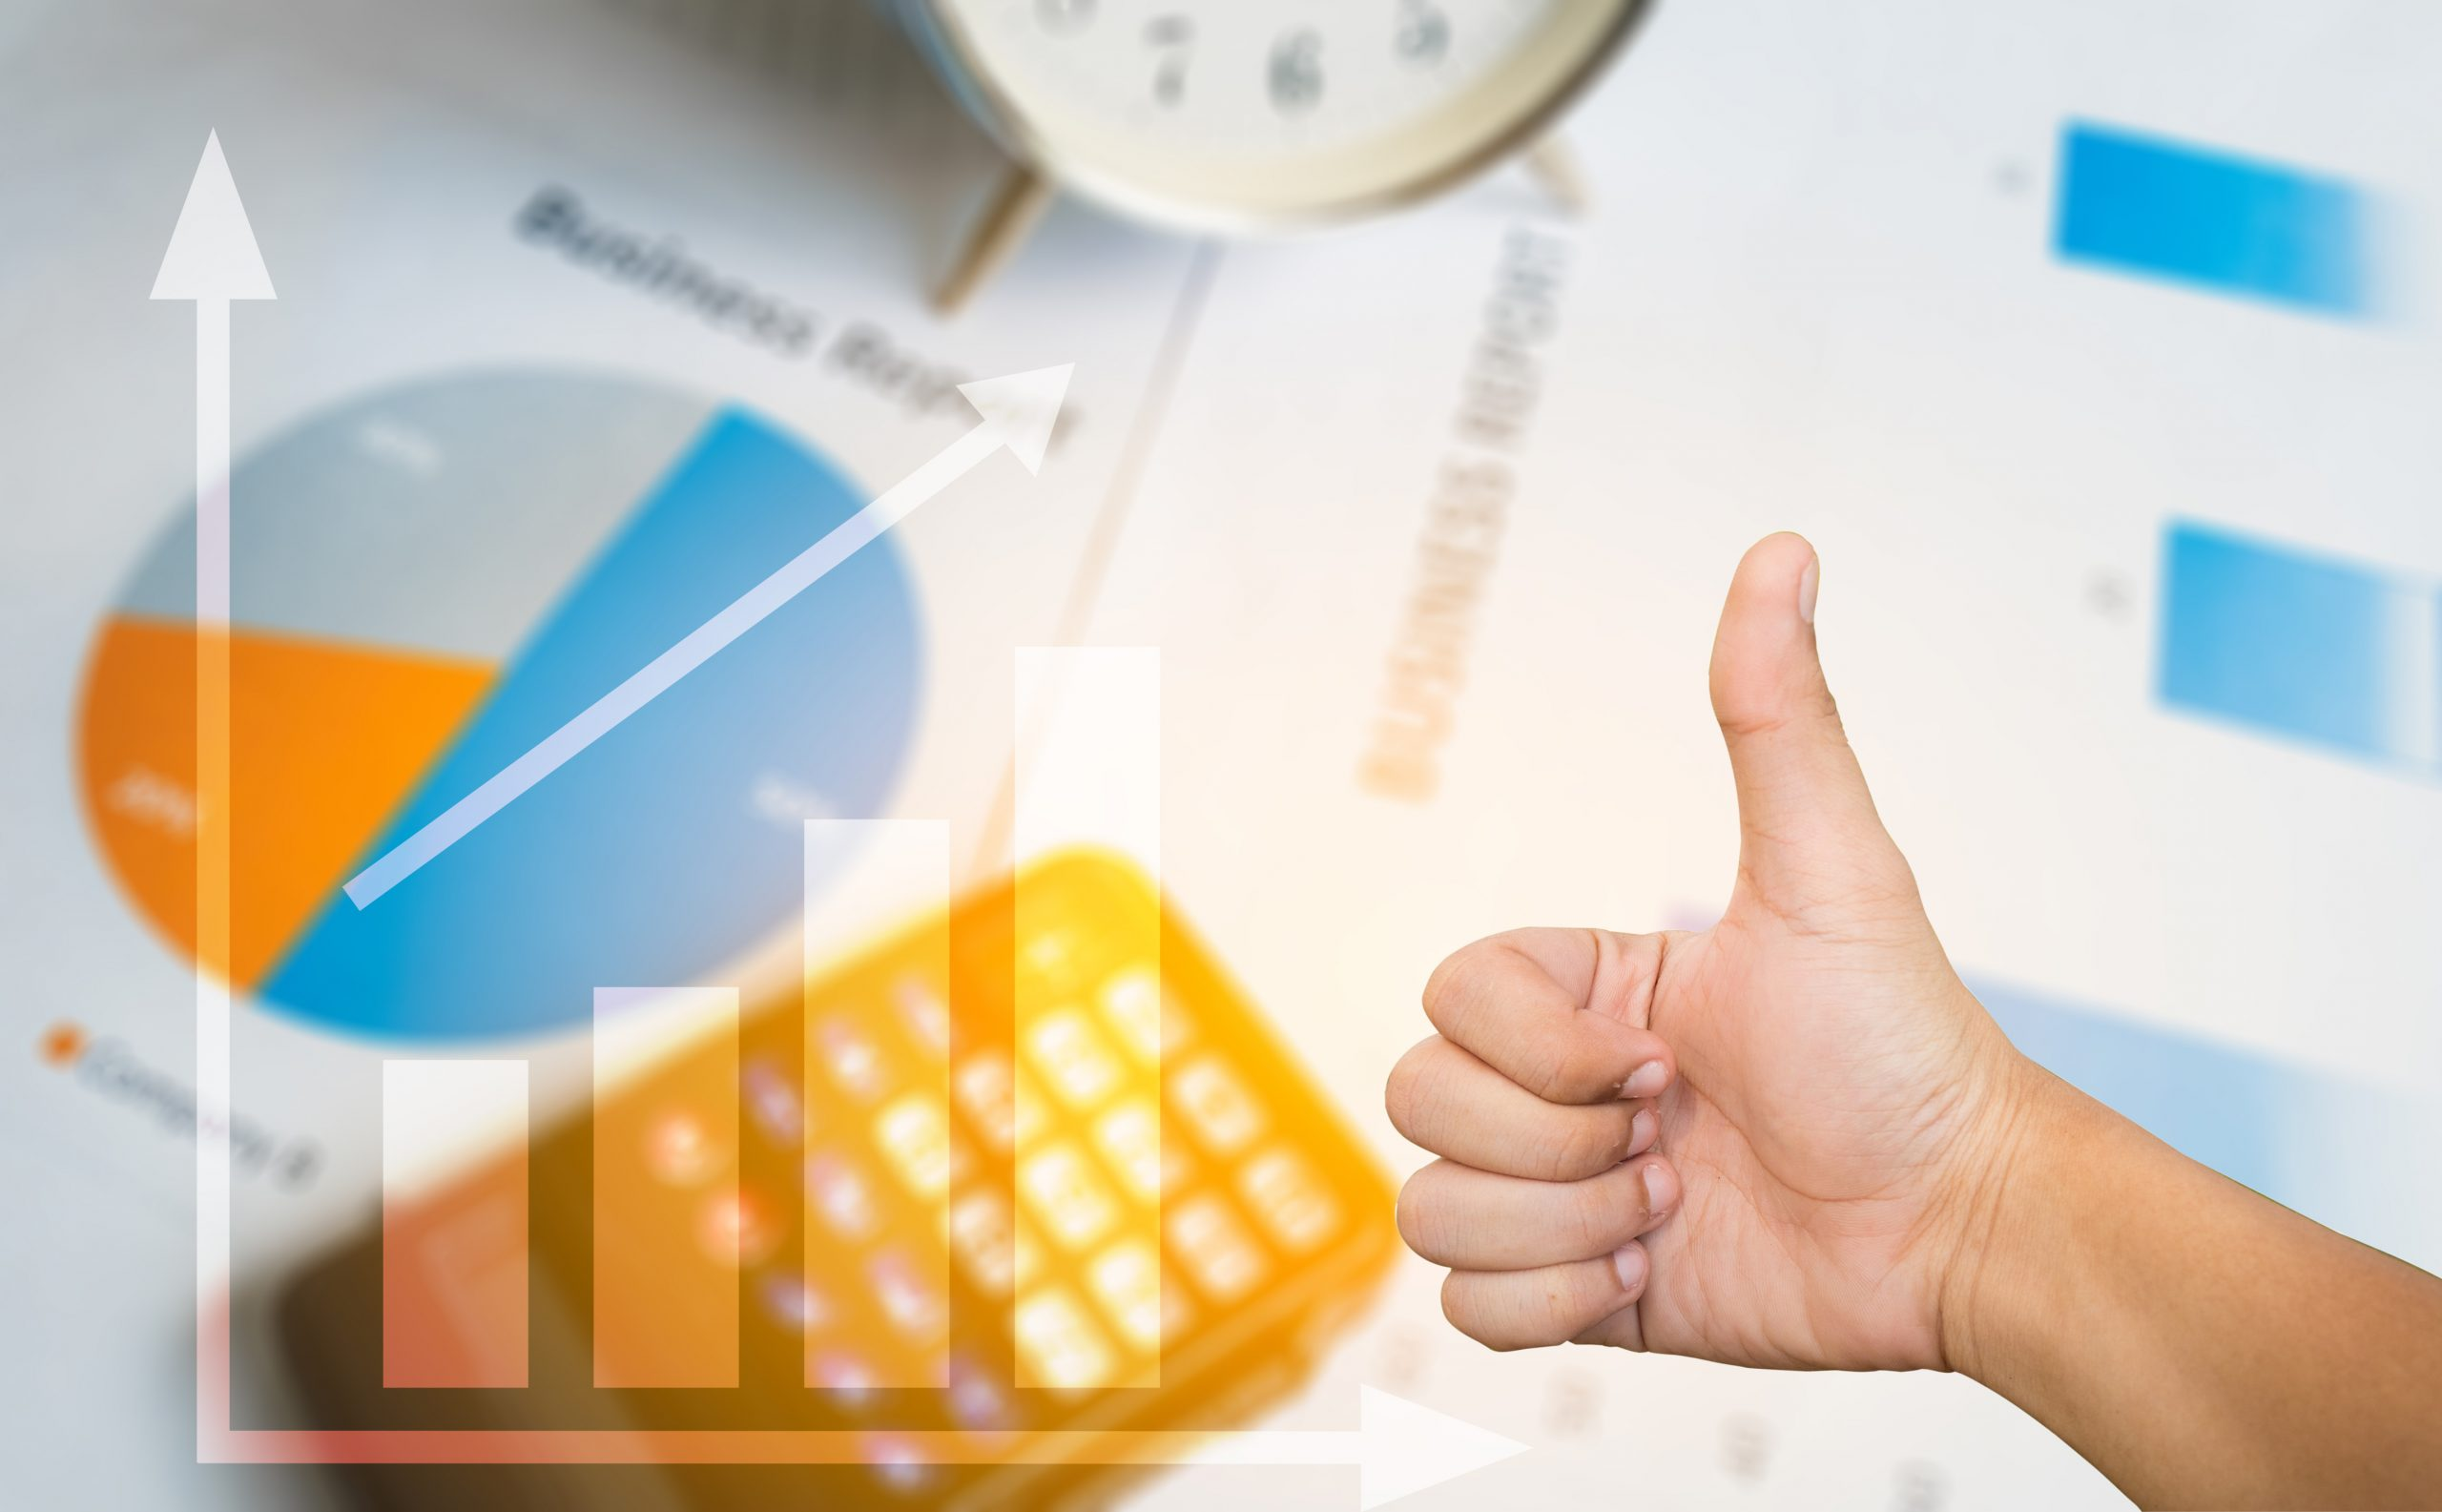 Accounting data with thumbs up